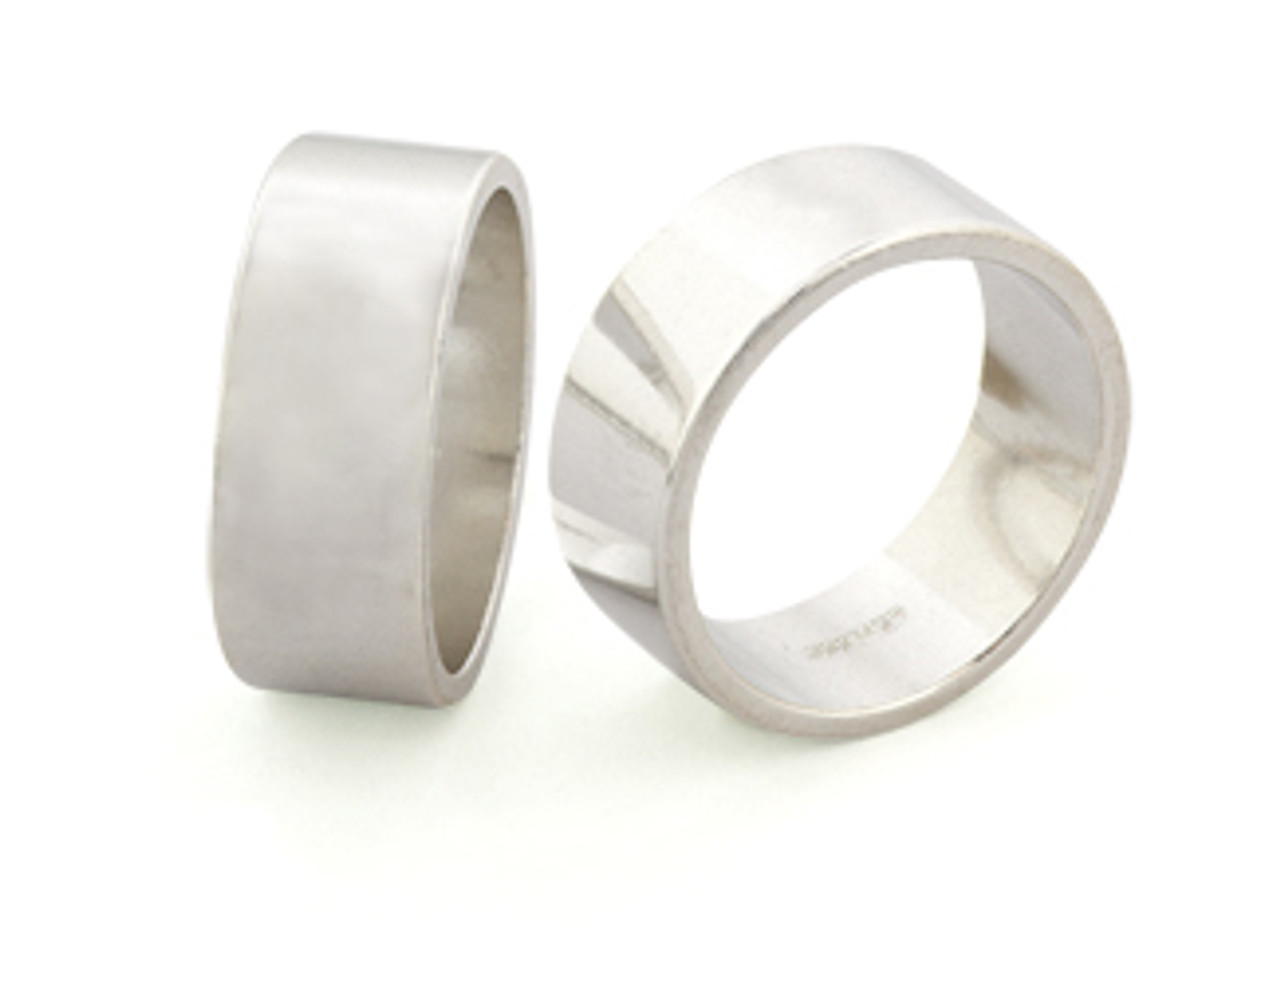 8mm Wide Ring Band - Size 5